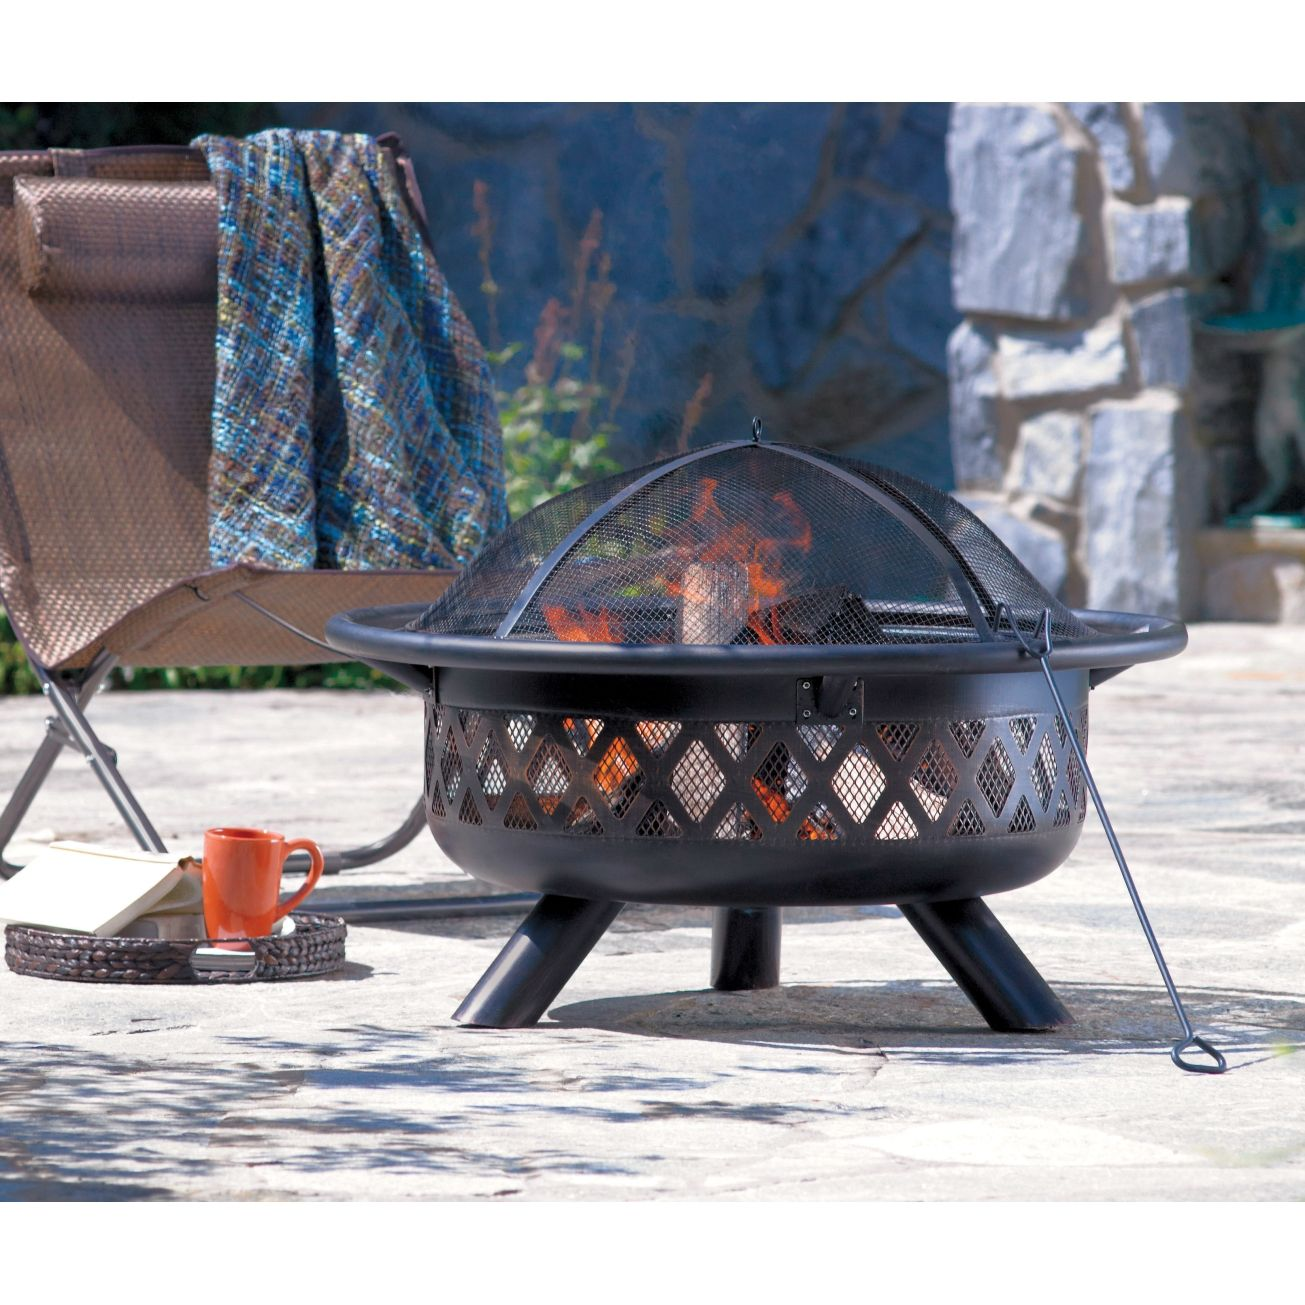 38In Round Fire Pit - Outdoor Fireplace   Outdoor fire pit ... on Ace Hardware Fire Pit id=60235